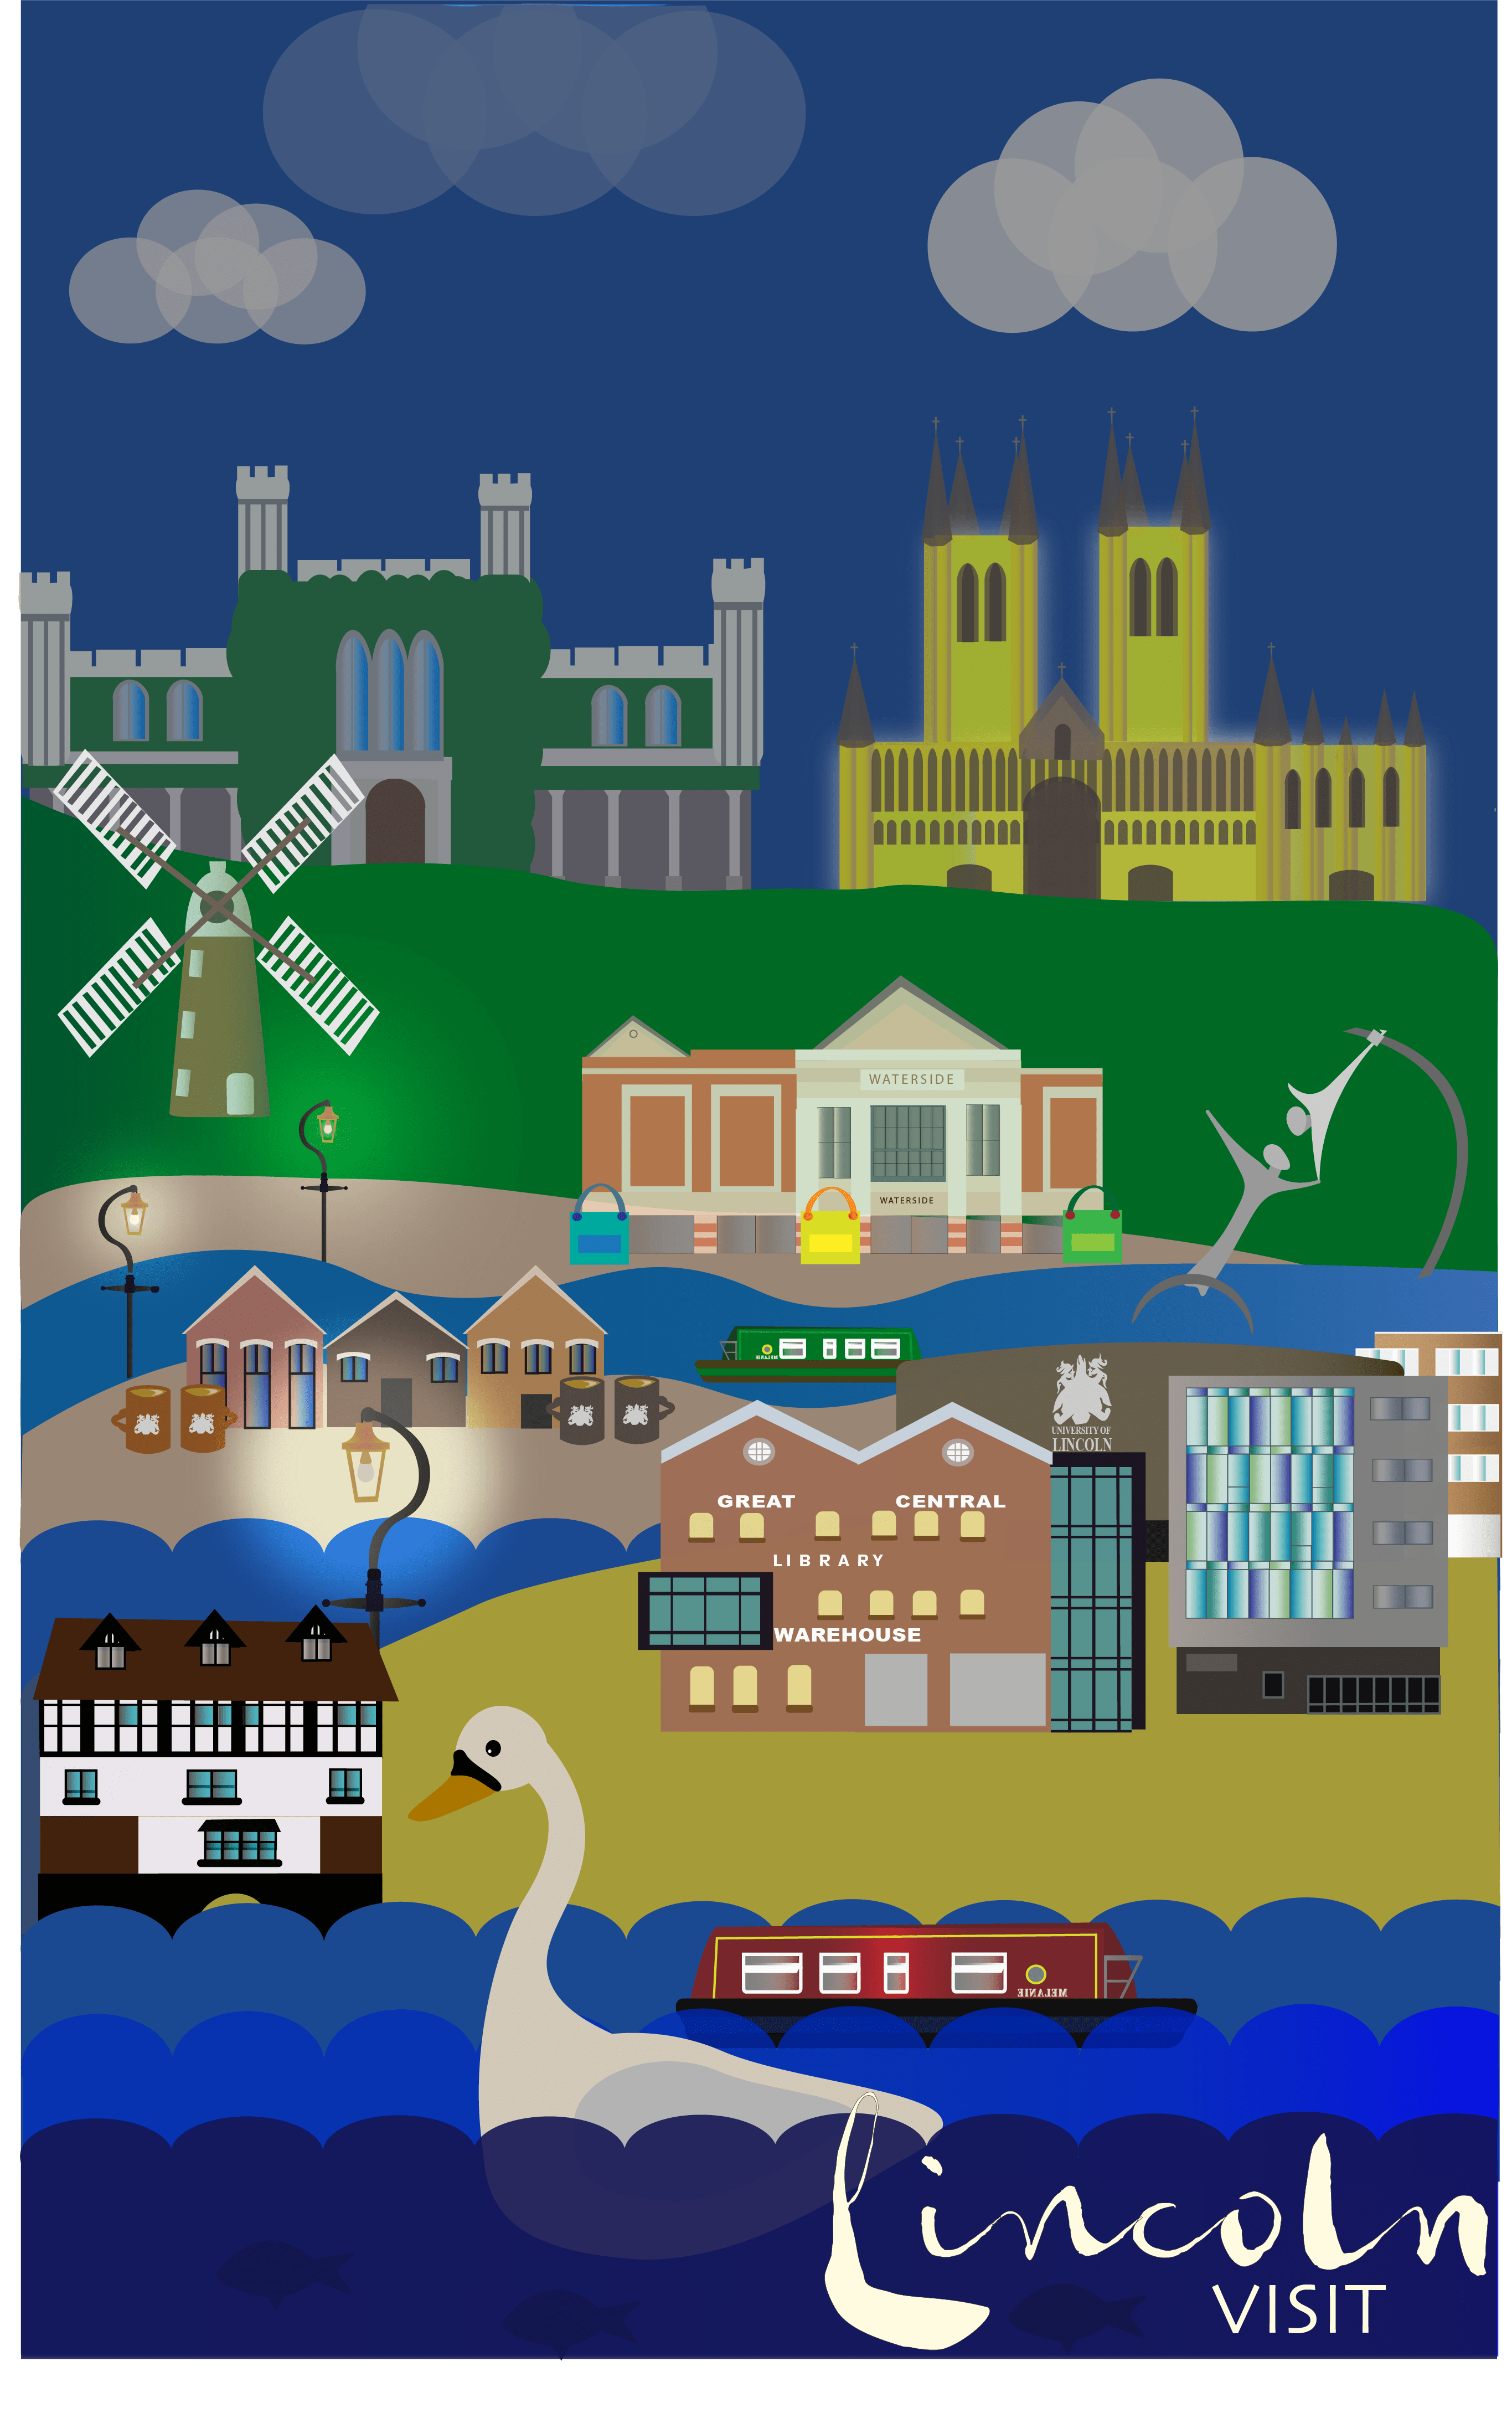 Illustration. A poster composed of minimalist illustrations of Lincoln landmarks at night, illuminated by street lights, text at the bottoms reads: